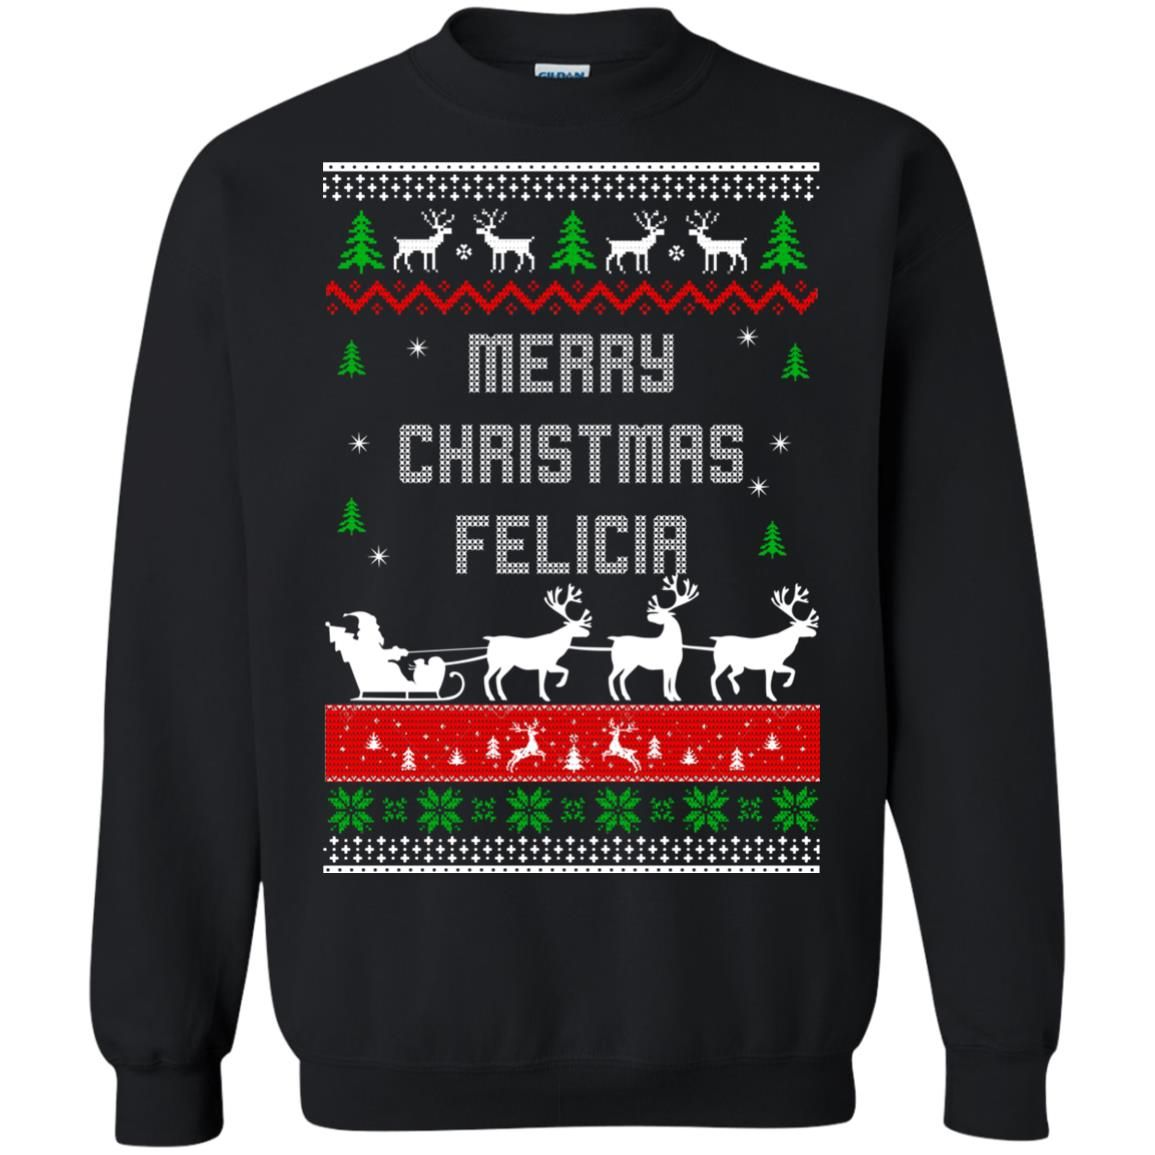 image 1675 - Raxo Merry Christmas Felicia ugly sweater, hoodie